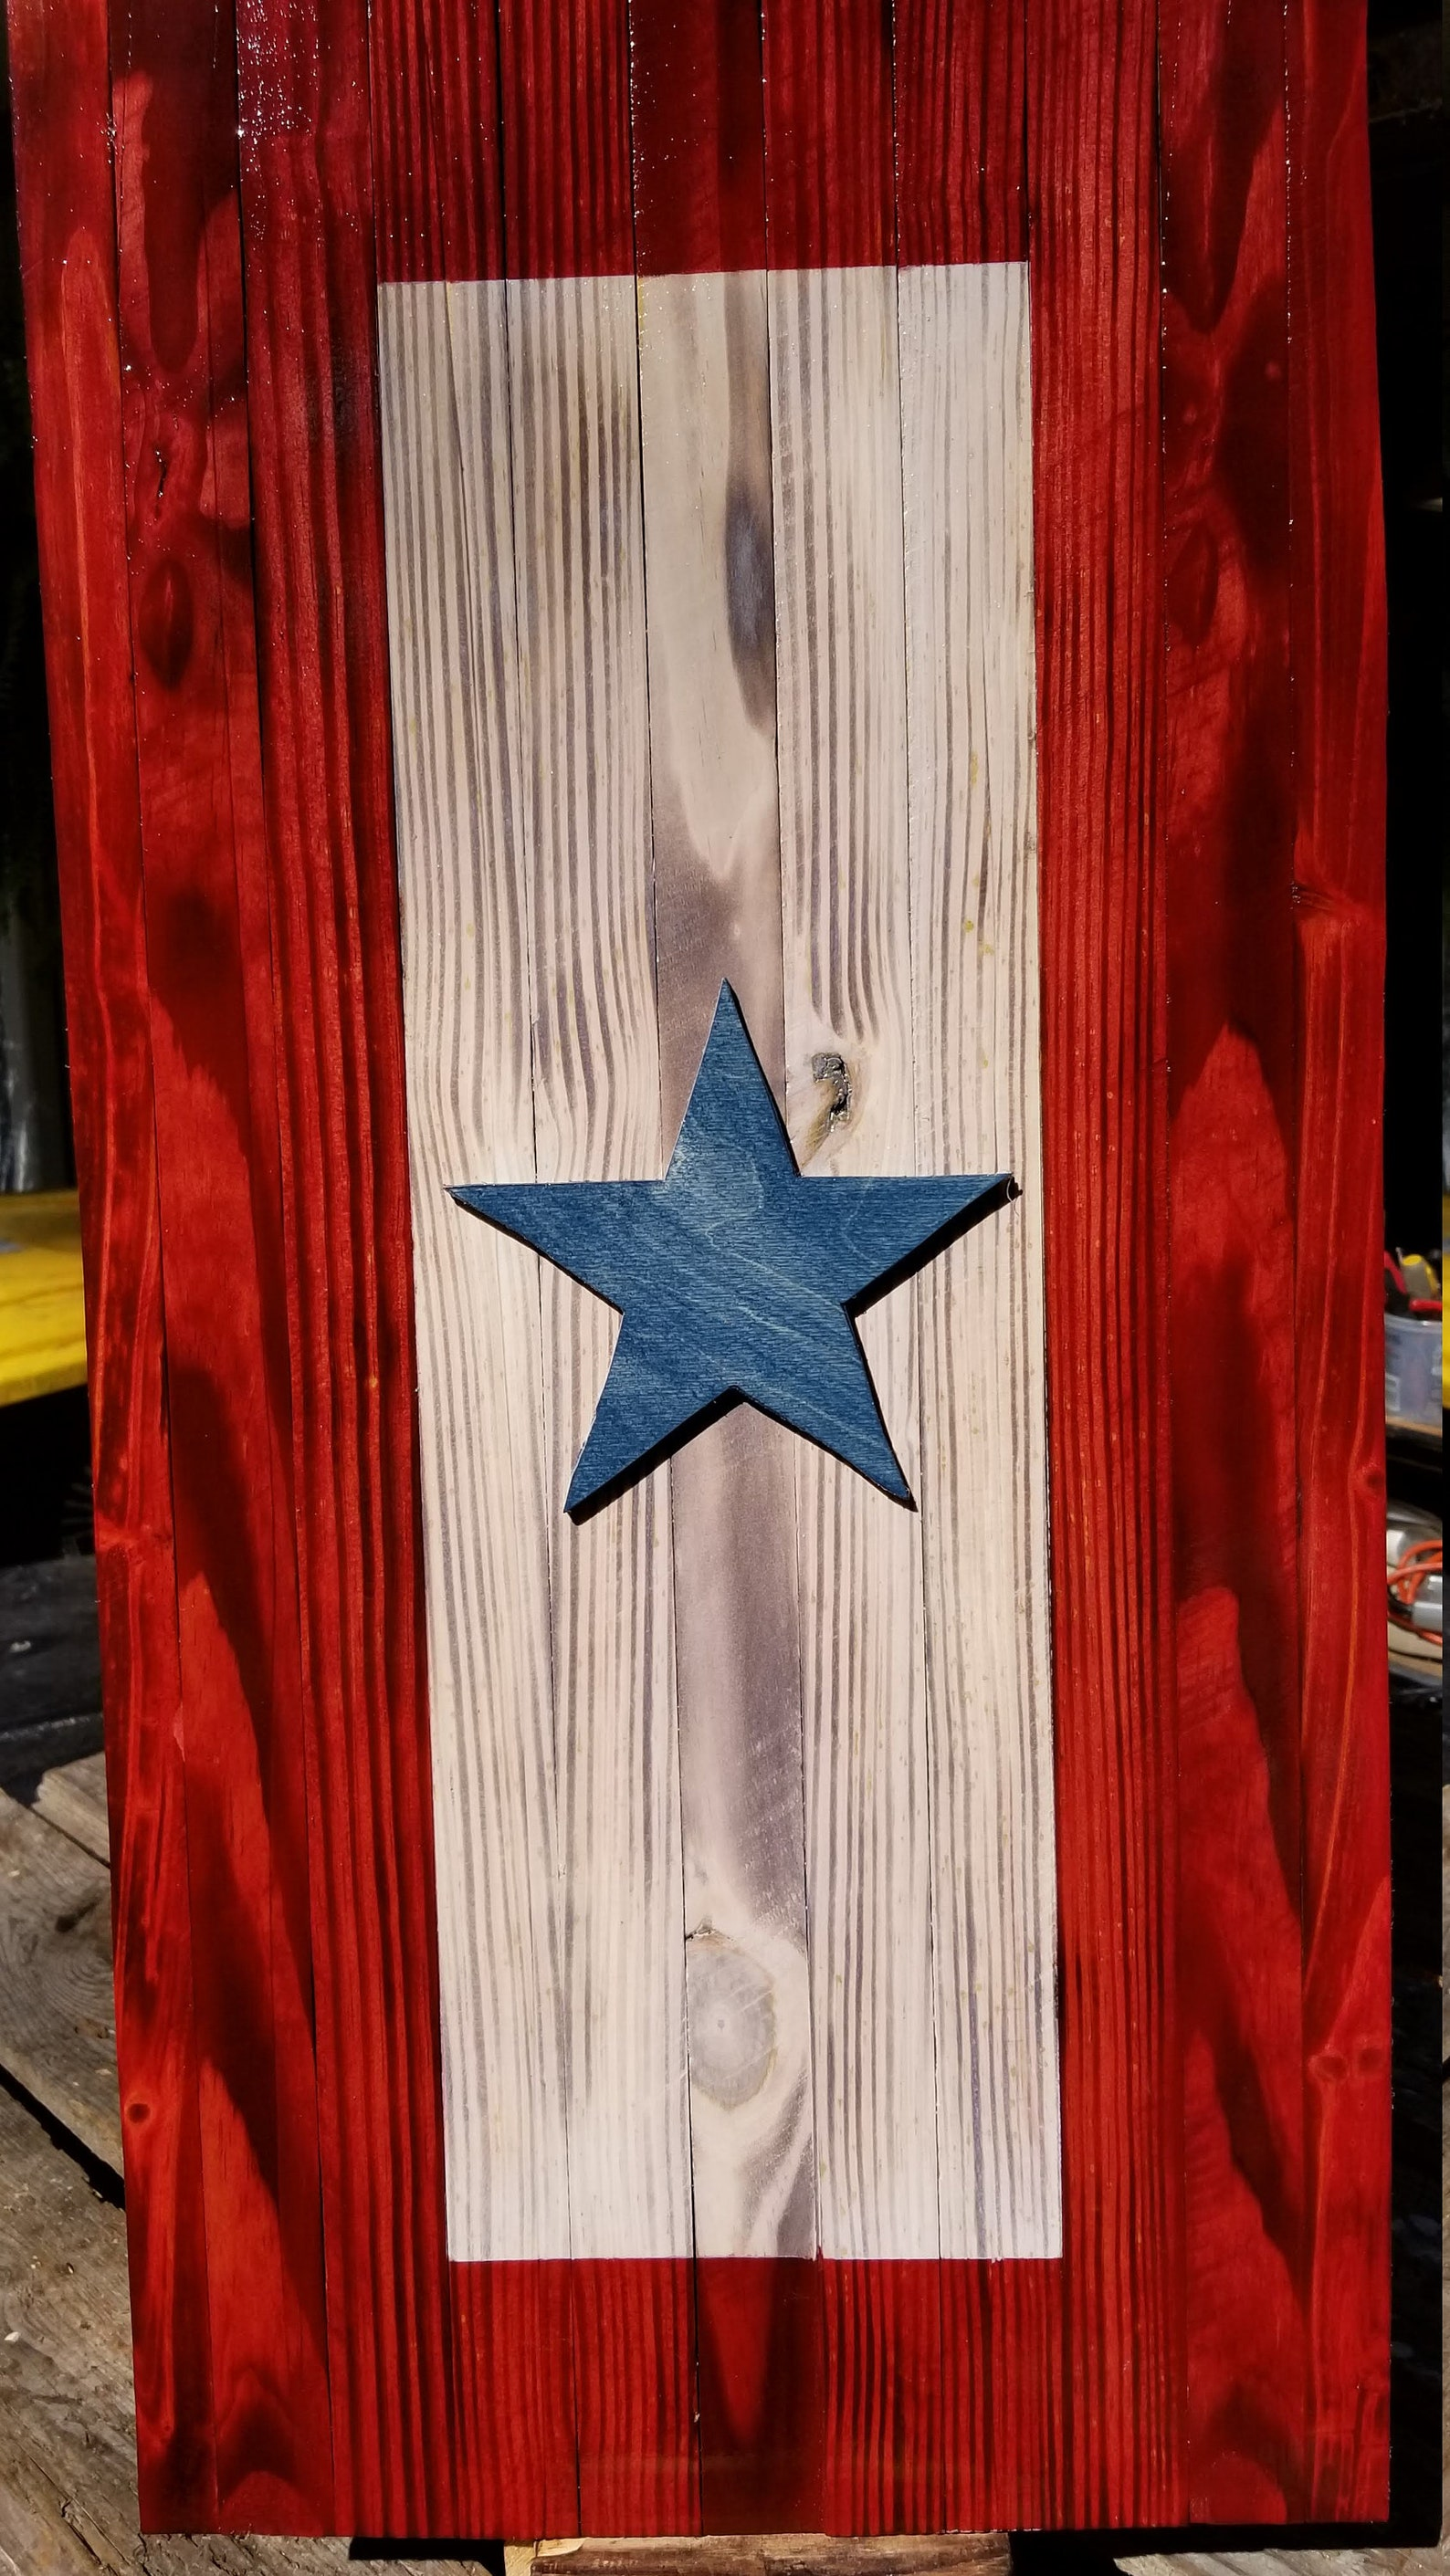 Deployment flag: rustic rectangle with red on the outside, neutral beige in the middle and blue star in the center.